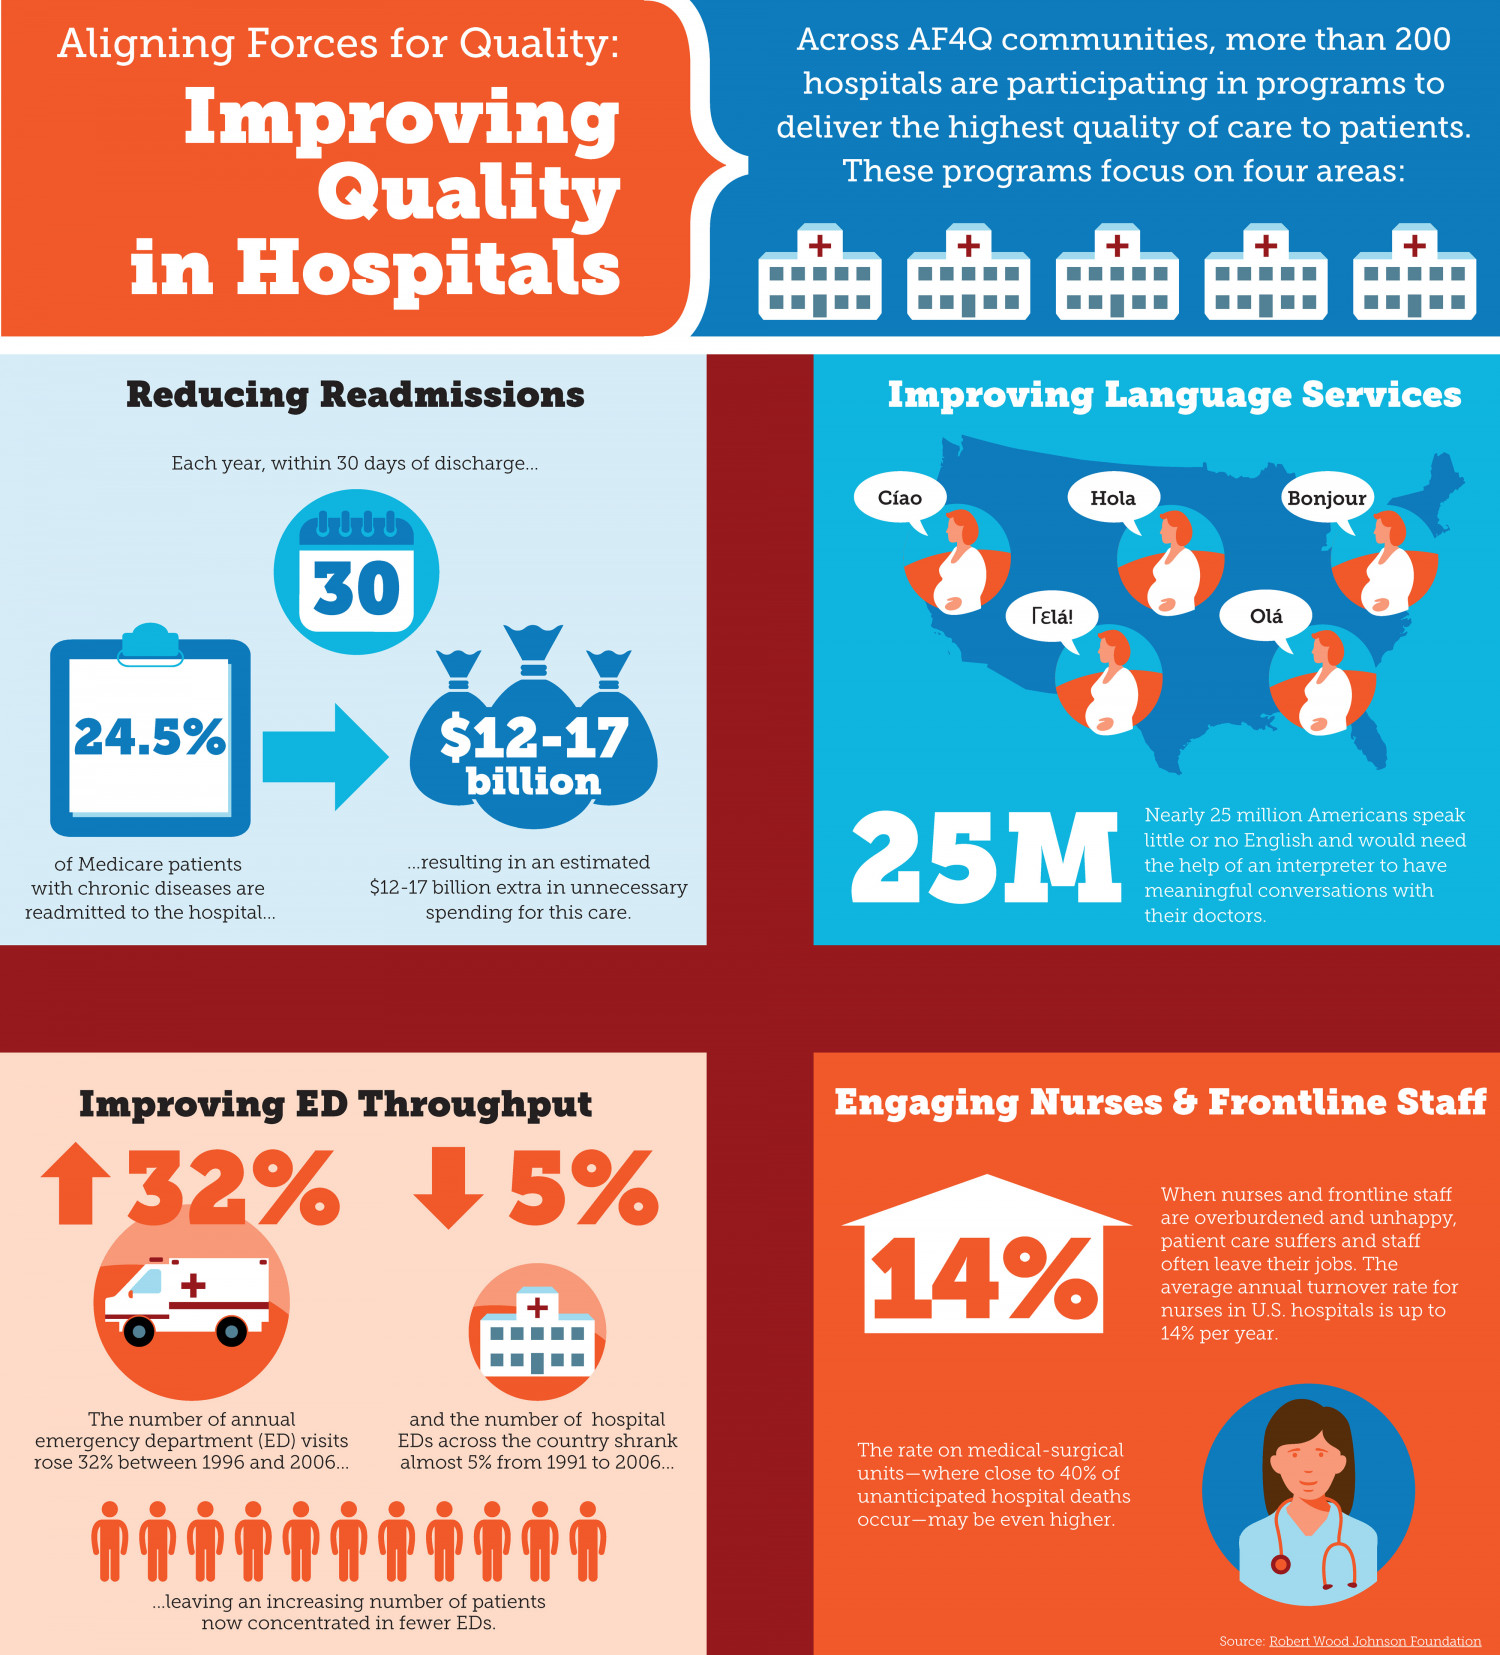 Improving Quality in Hospitals Infographic